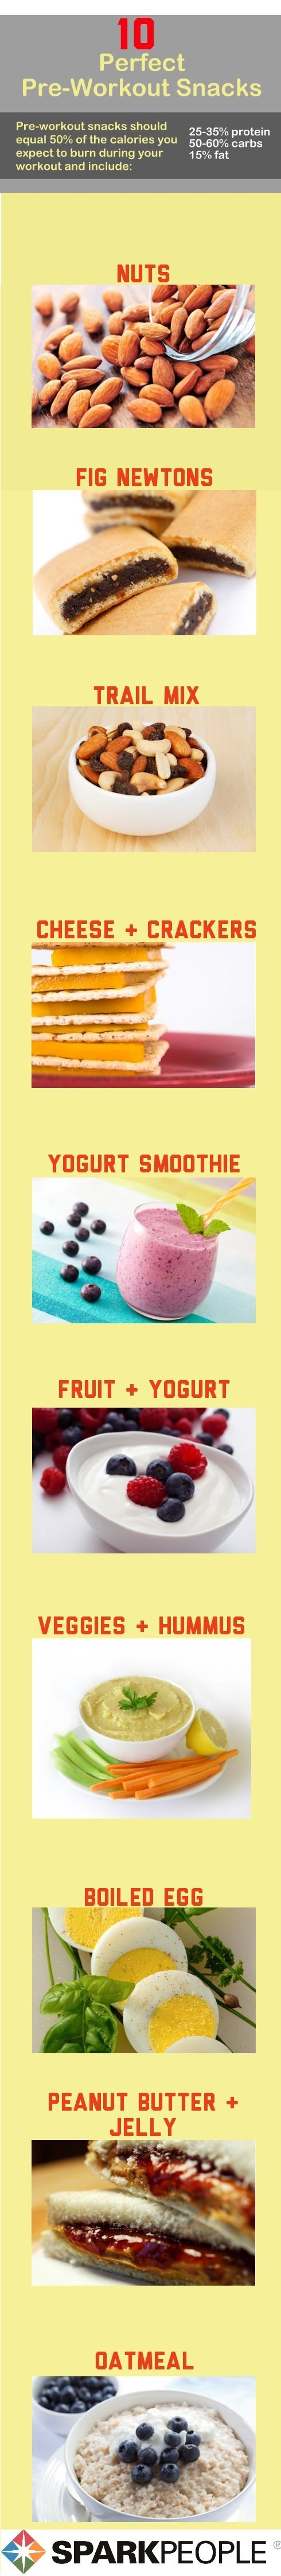 preworkout snacks to help you workout